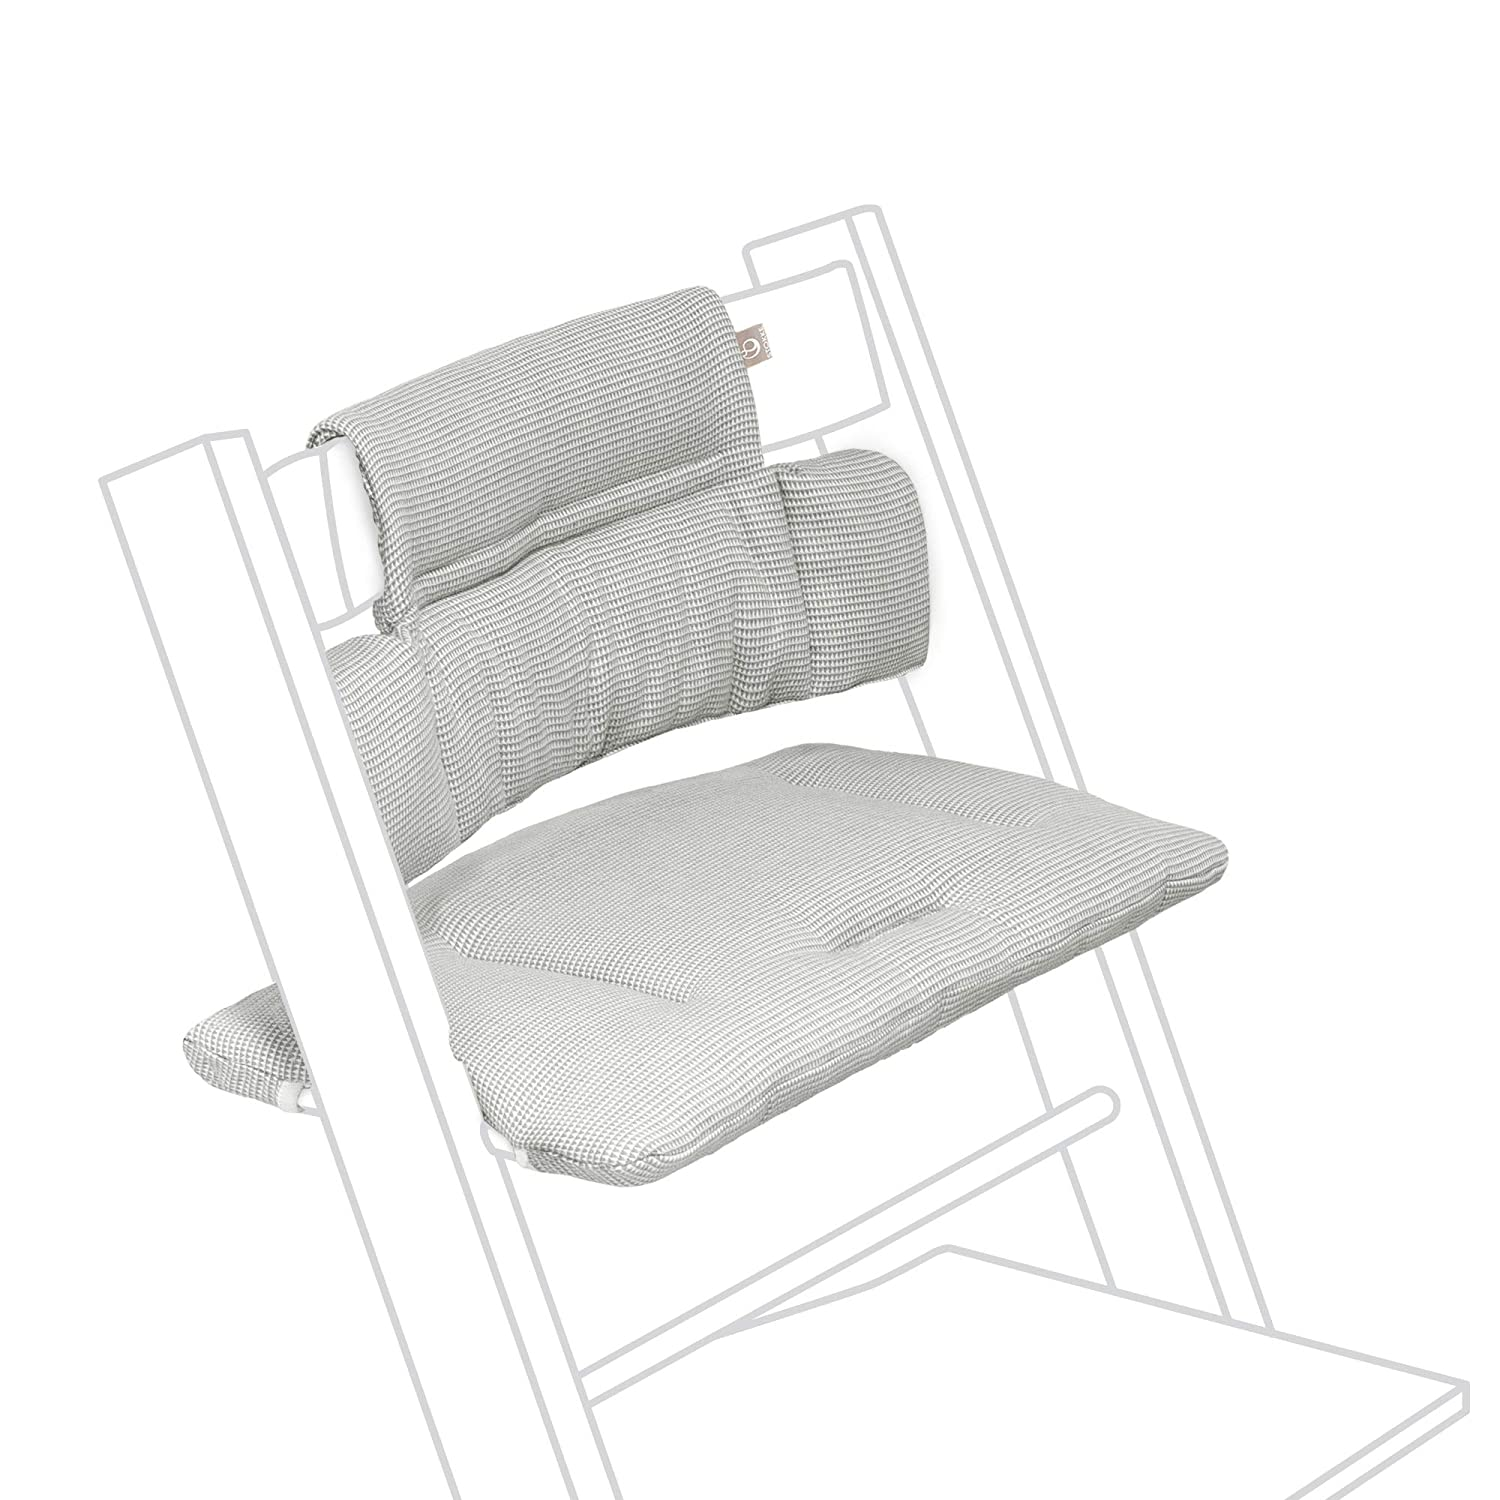 Stokke Tripp Trapp Classic Cushion, Nordic Grey - Pair with Tripp Trapp Chair & High Chair for Support and Comfort - Machine Washable - Fits All Tripp Trapp Chairs